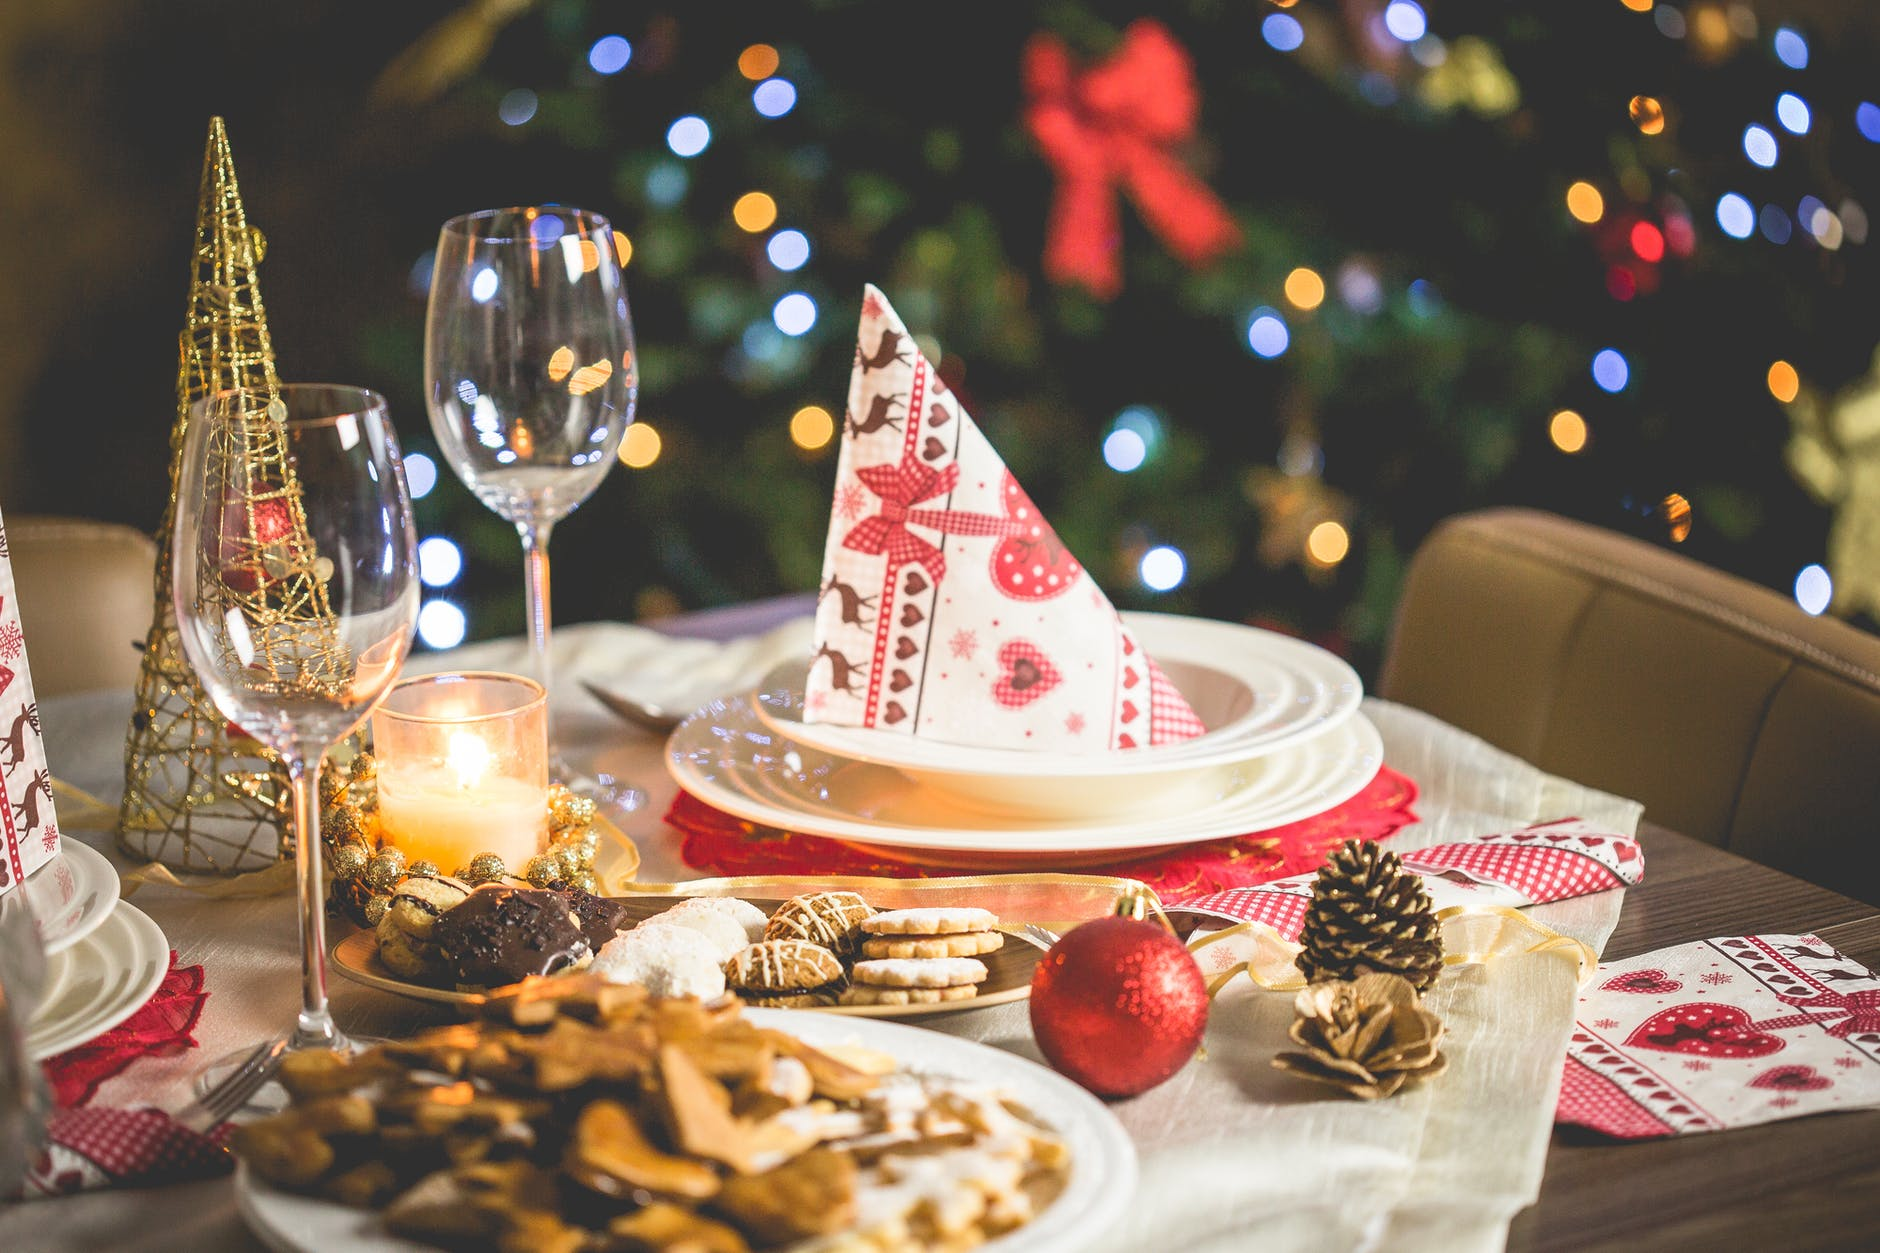 Delicious Vegan Christmas Recipes For Dinner Party